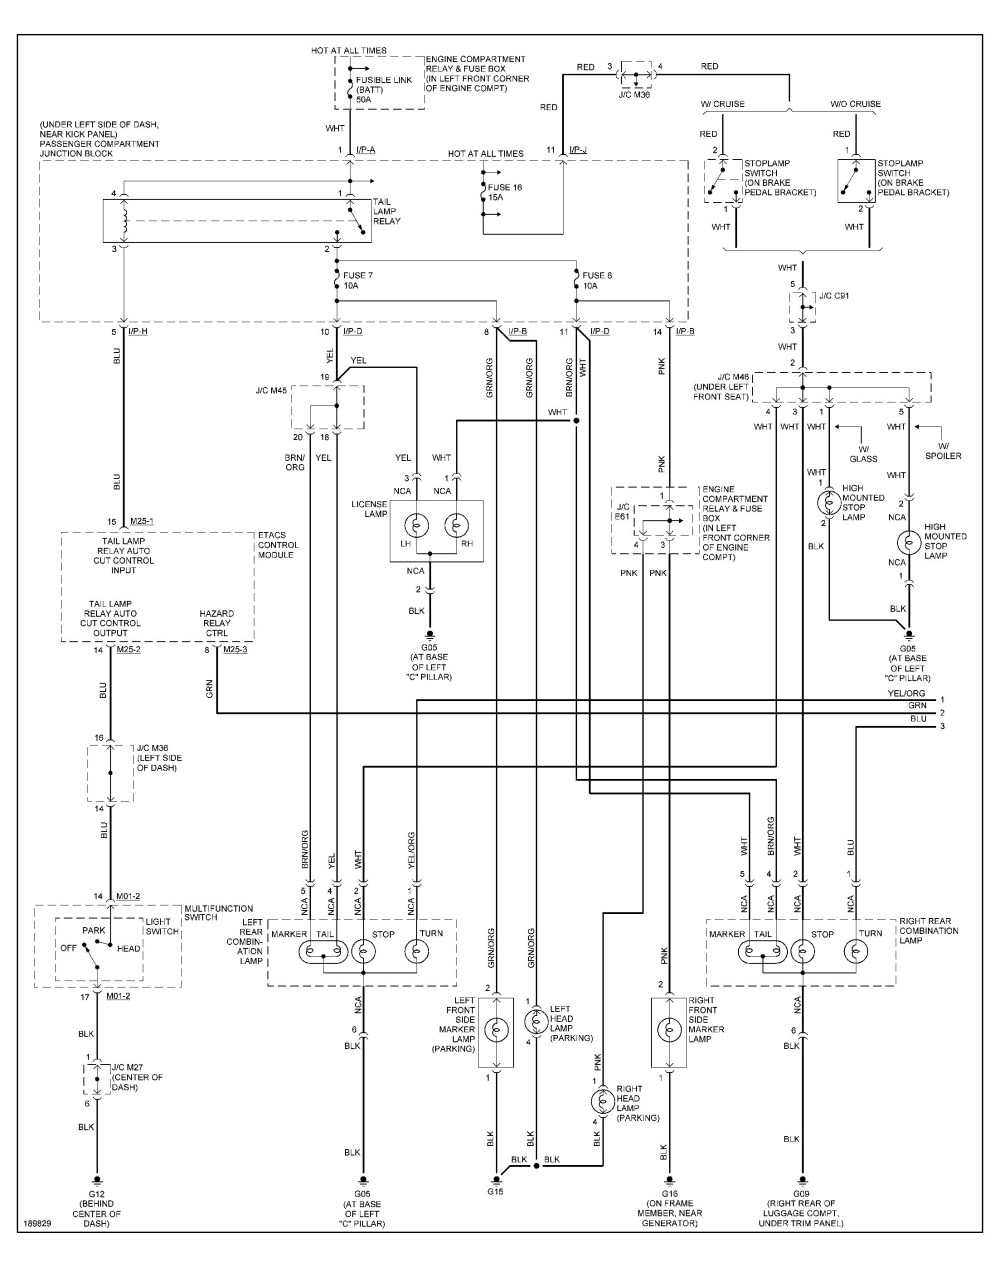 medium resolution of 2005 hyundai sonata fuse diagram wiring diagram 2005 hyundai sonata engine diagram